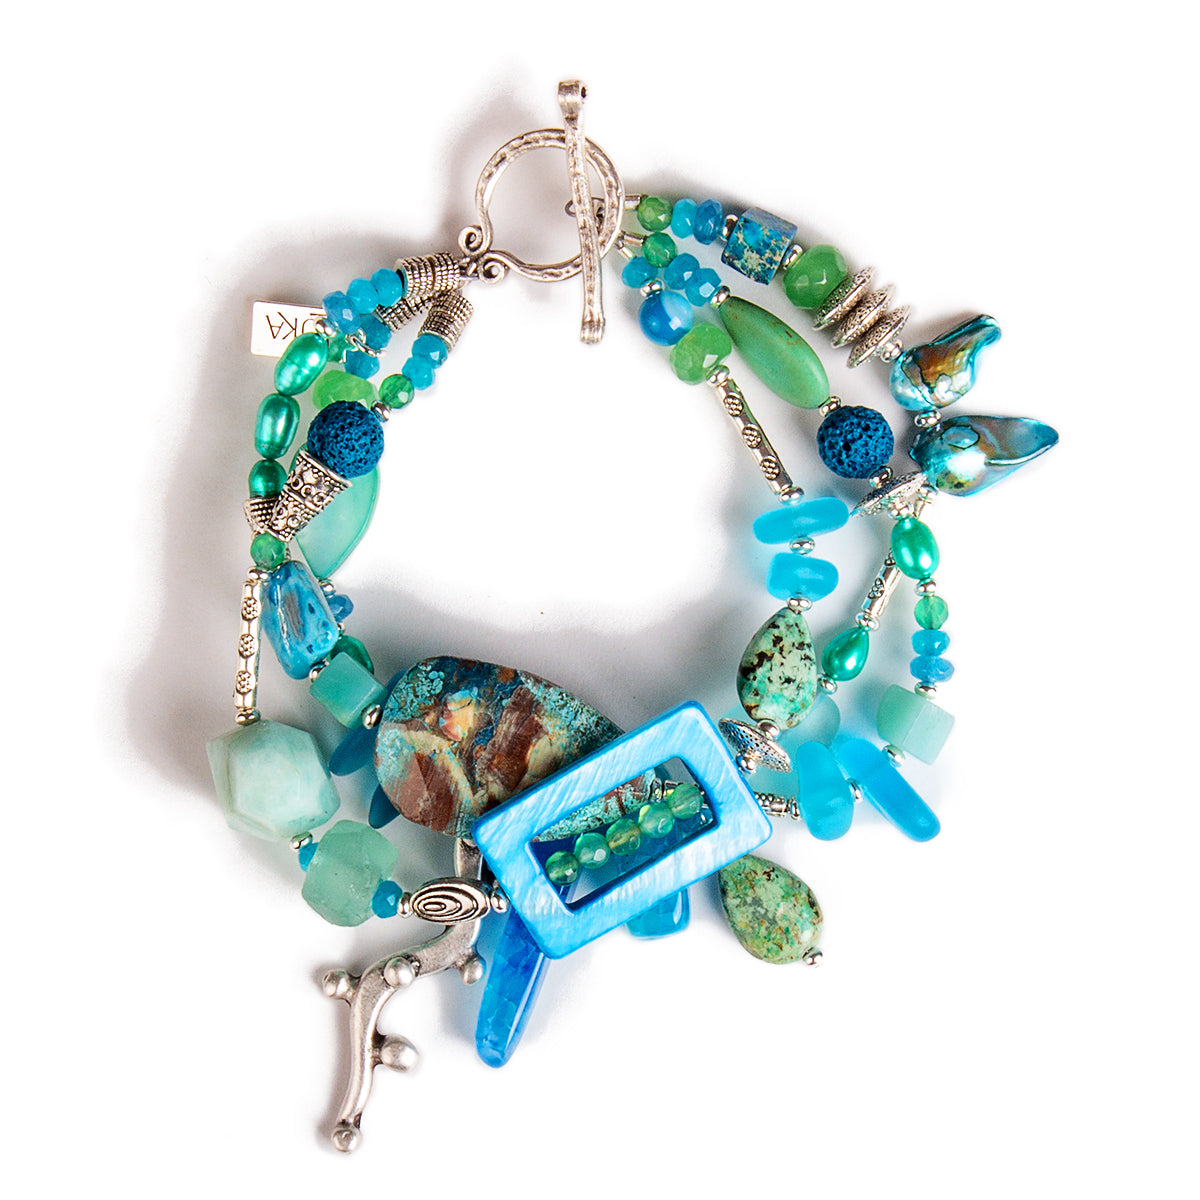 N°623 The Delicious Beach Guest List Statement Bracelet